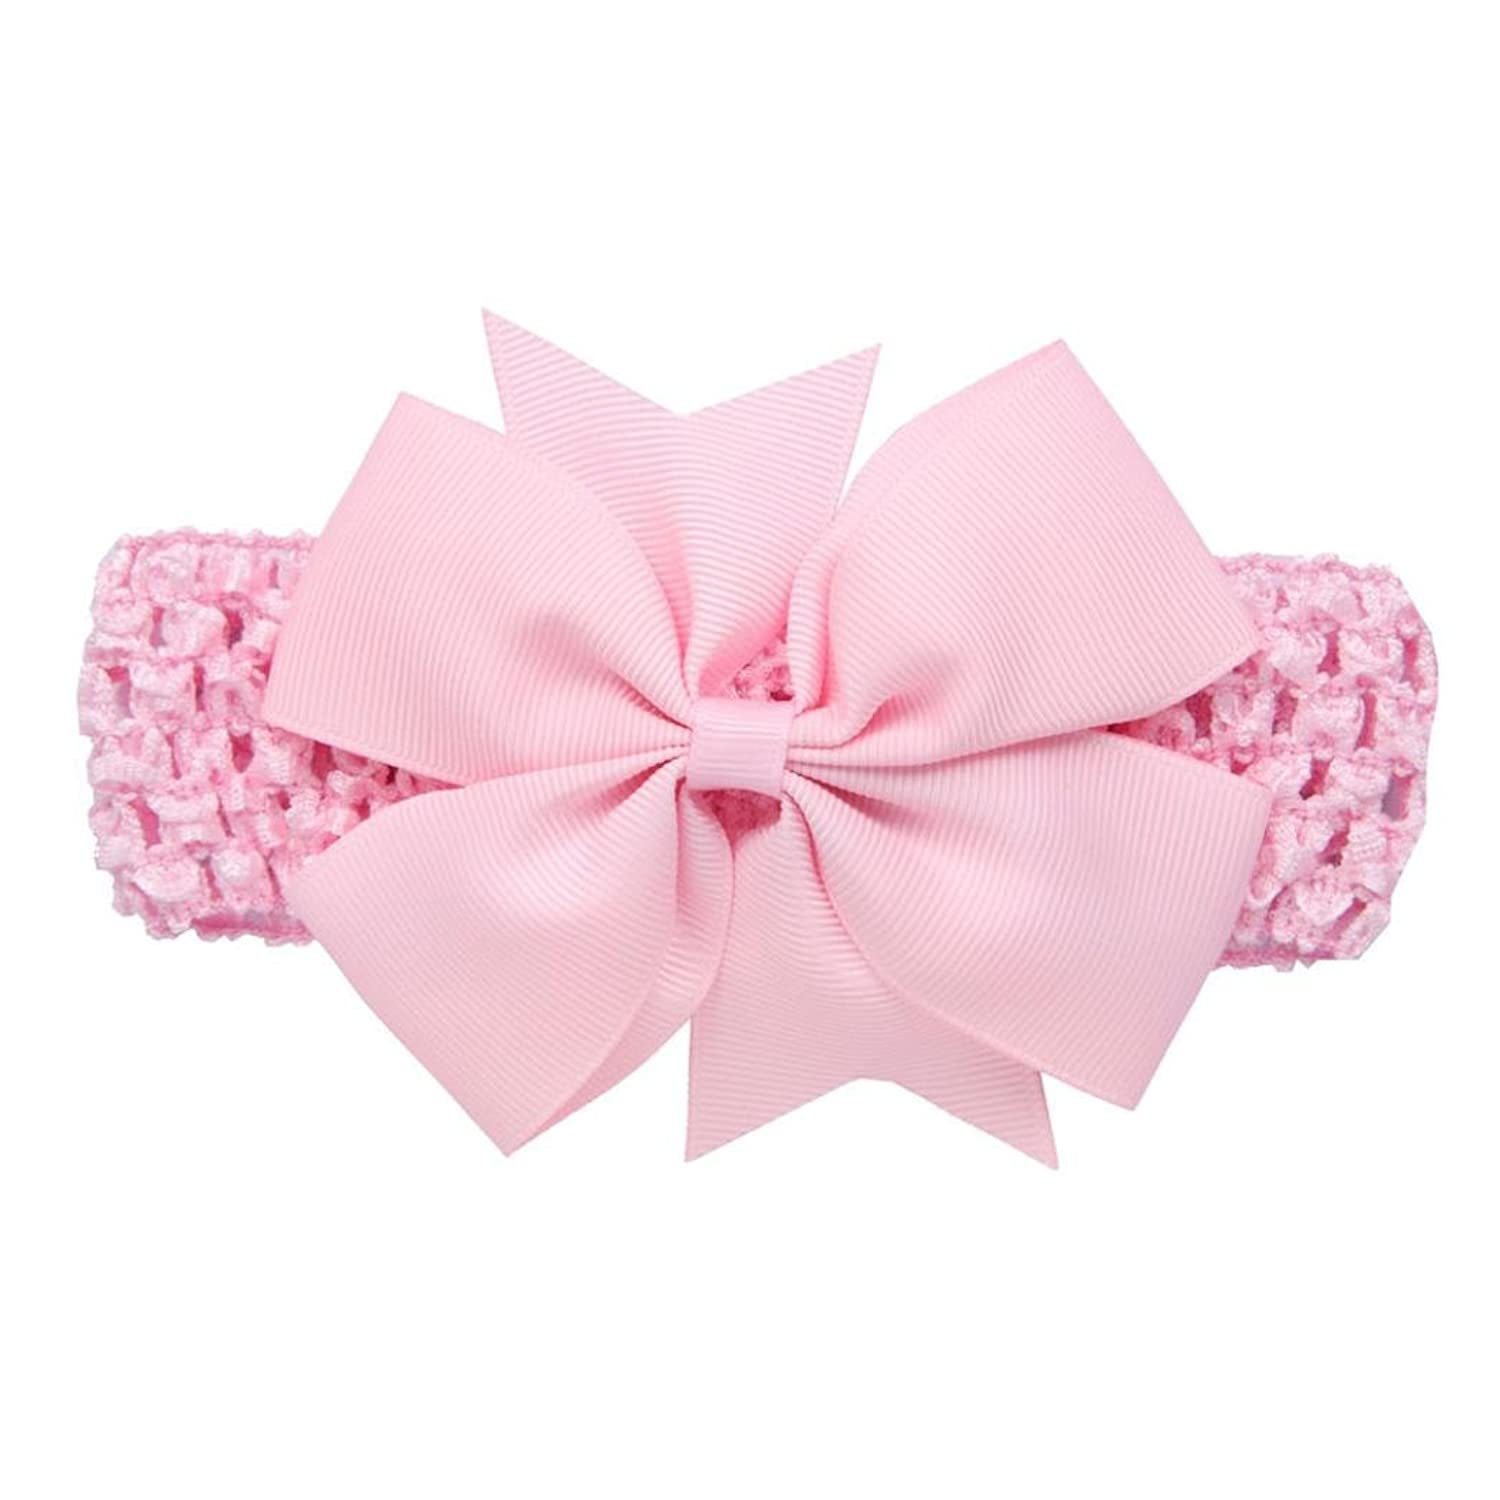 vestitiy Cute Baby Girls Bowknot Headbands Soft Hair Accessories for Infant Toddler Hair Band Headwear